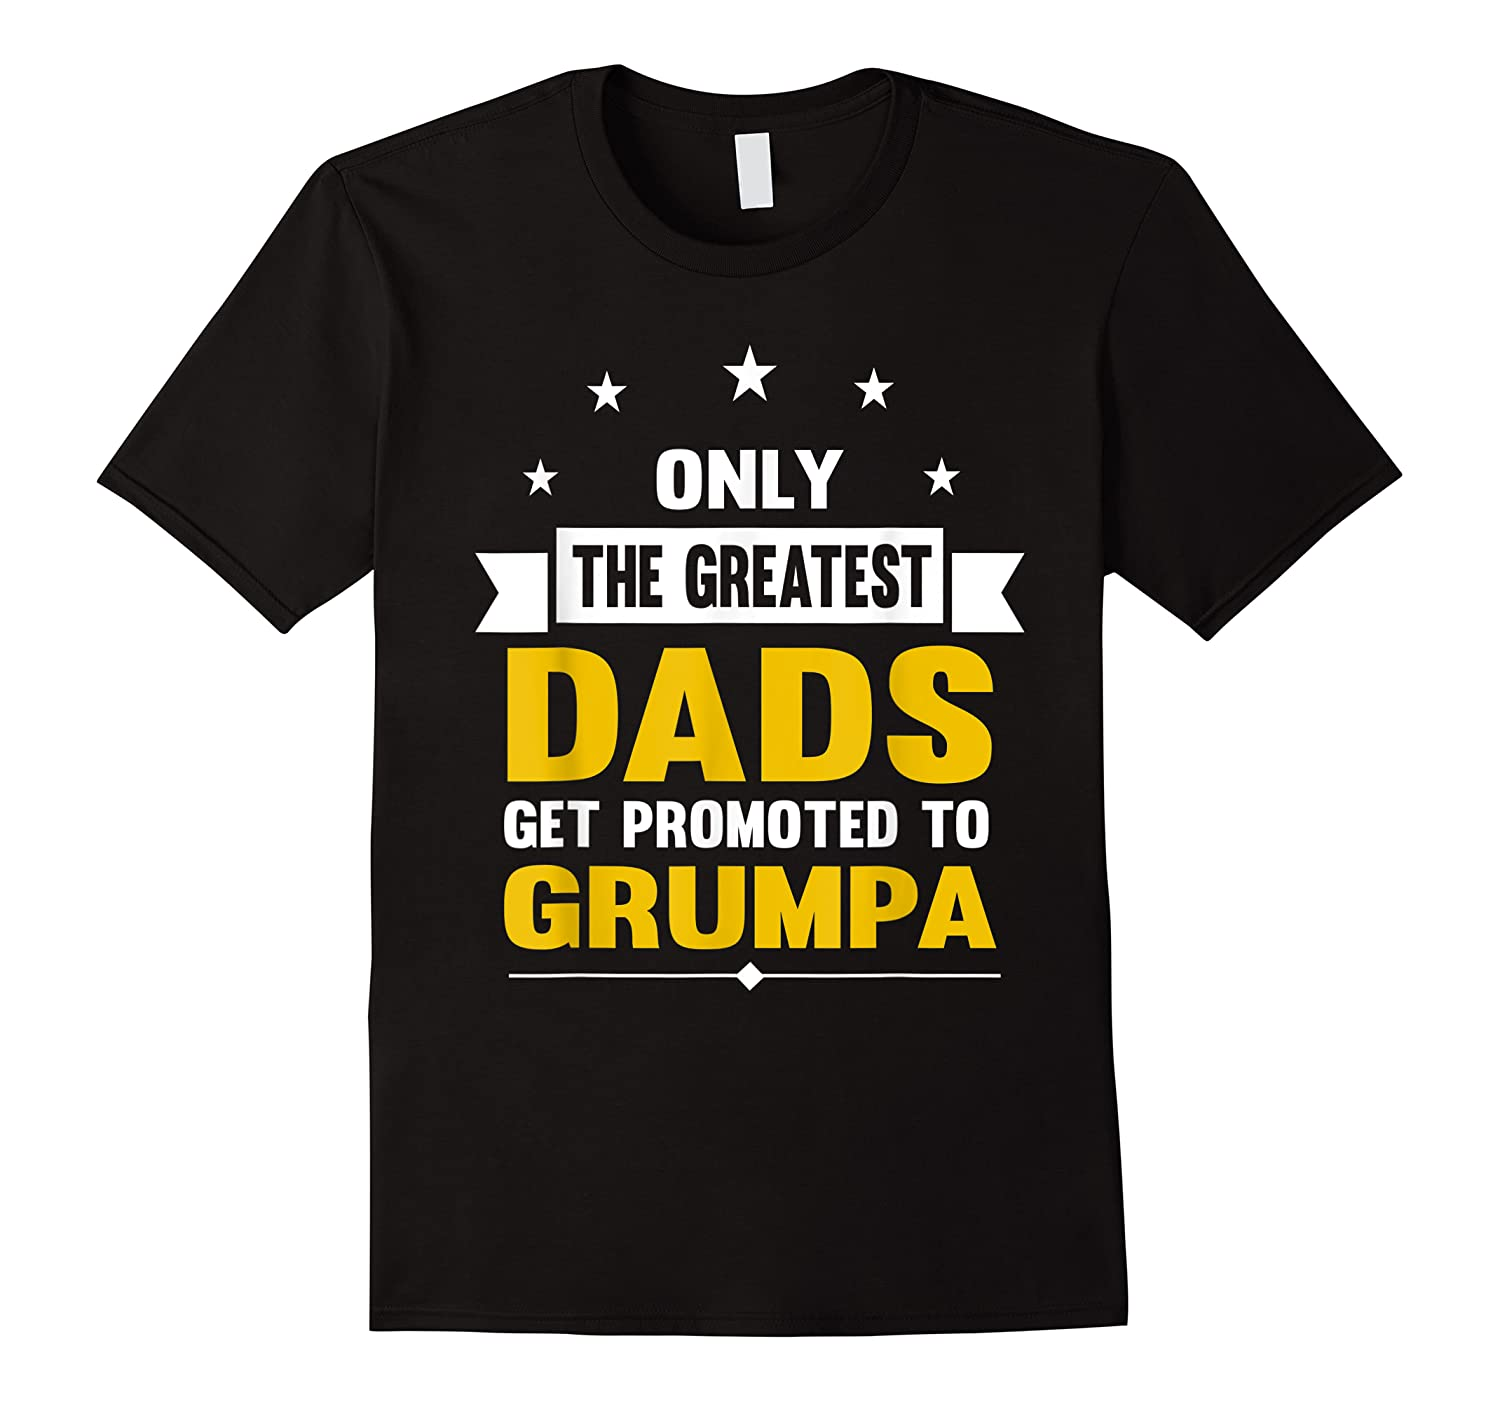 Family 365 The Greatest Dads Get Promoted To Grumpa Grandpa T-shirt